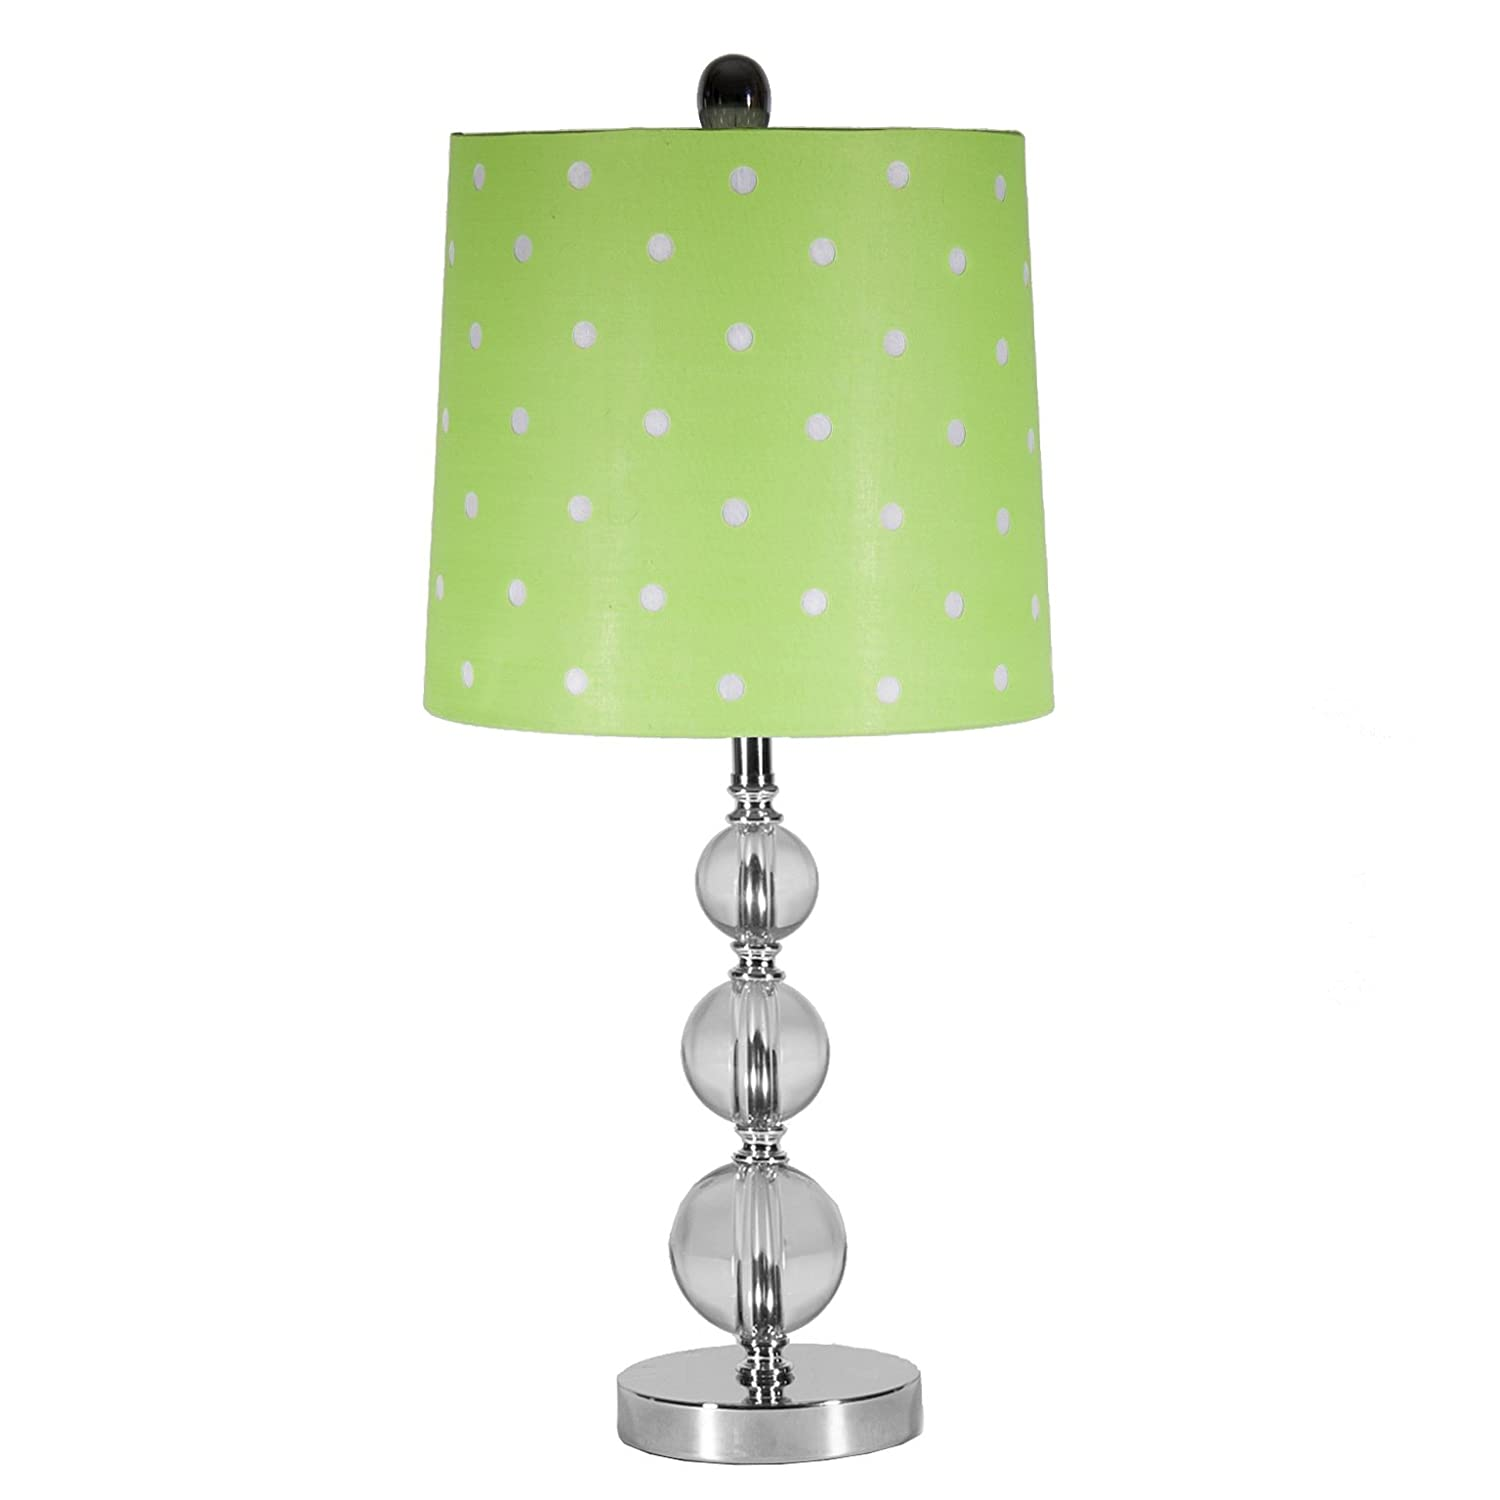 Bright Green Lamp Shade : Use a lime green lamp shade to spice up your room